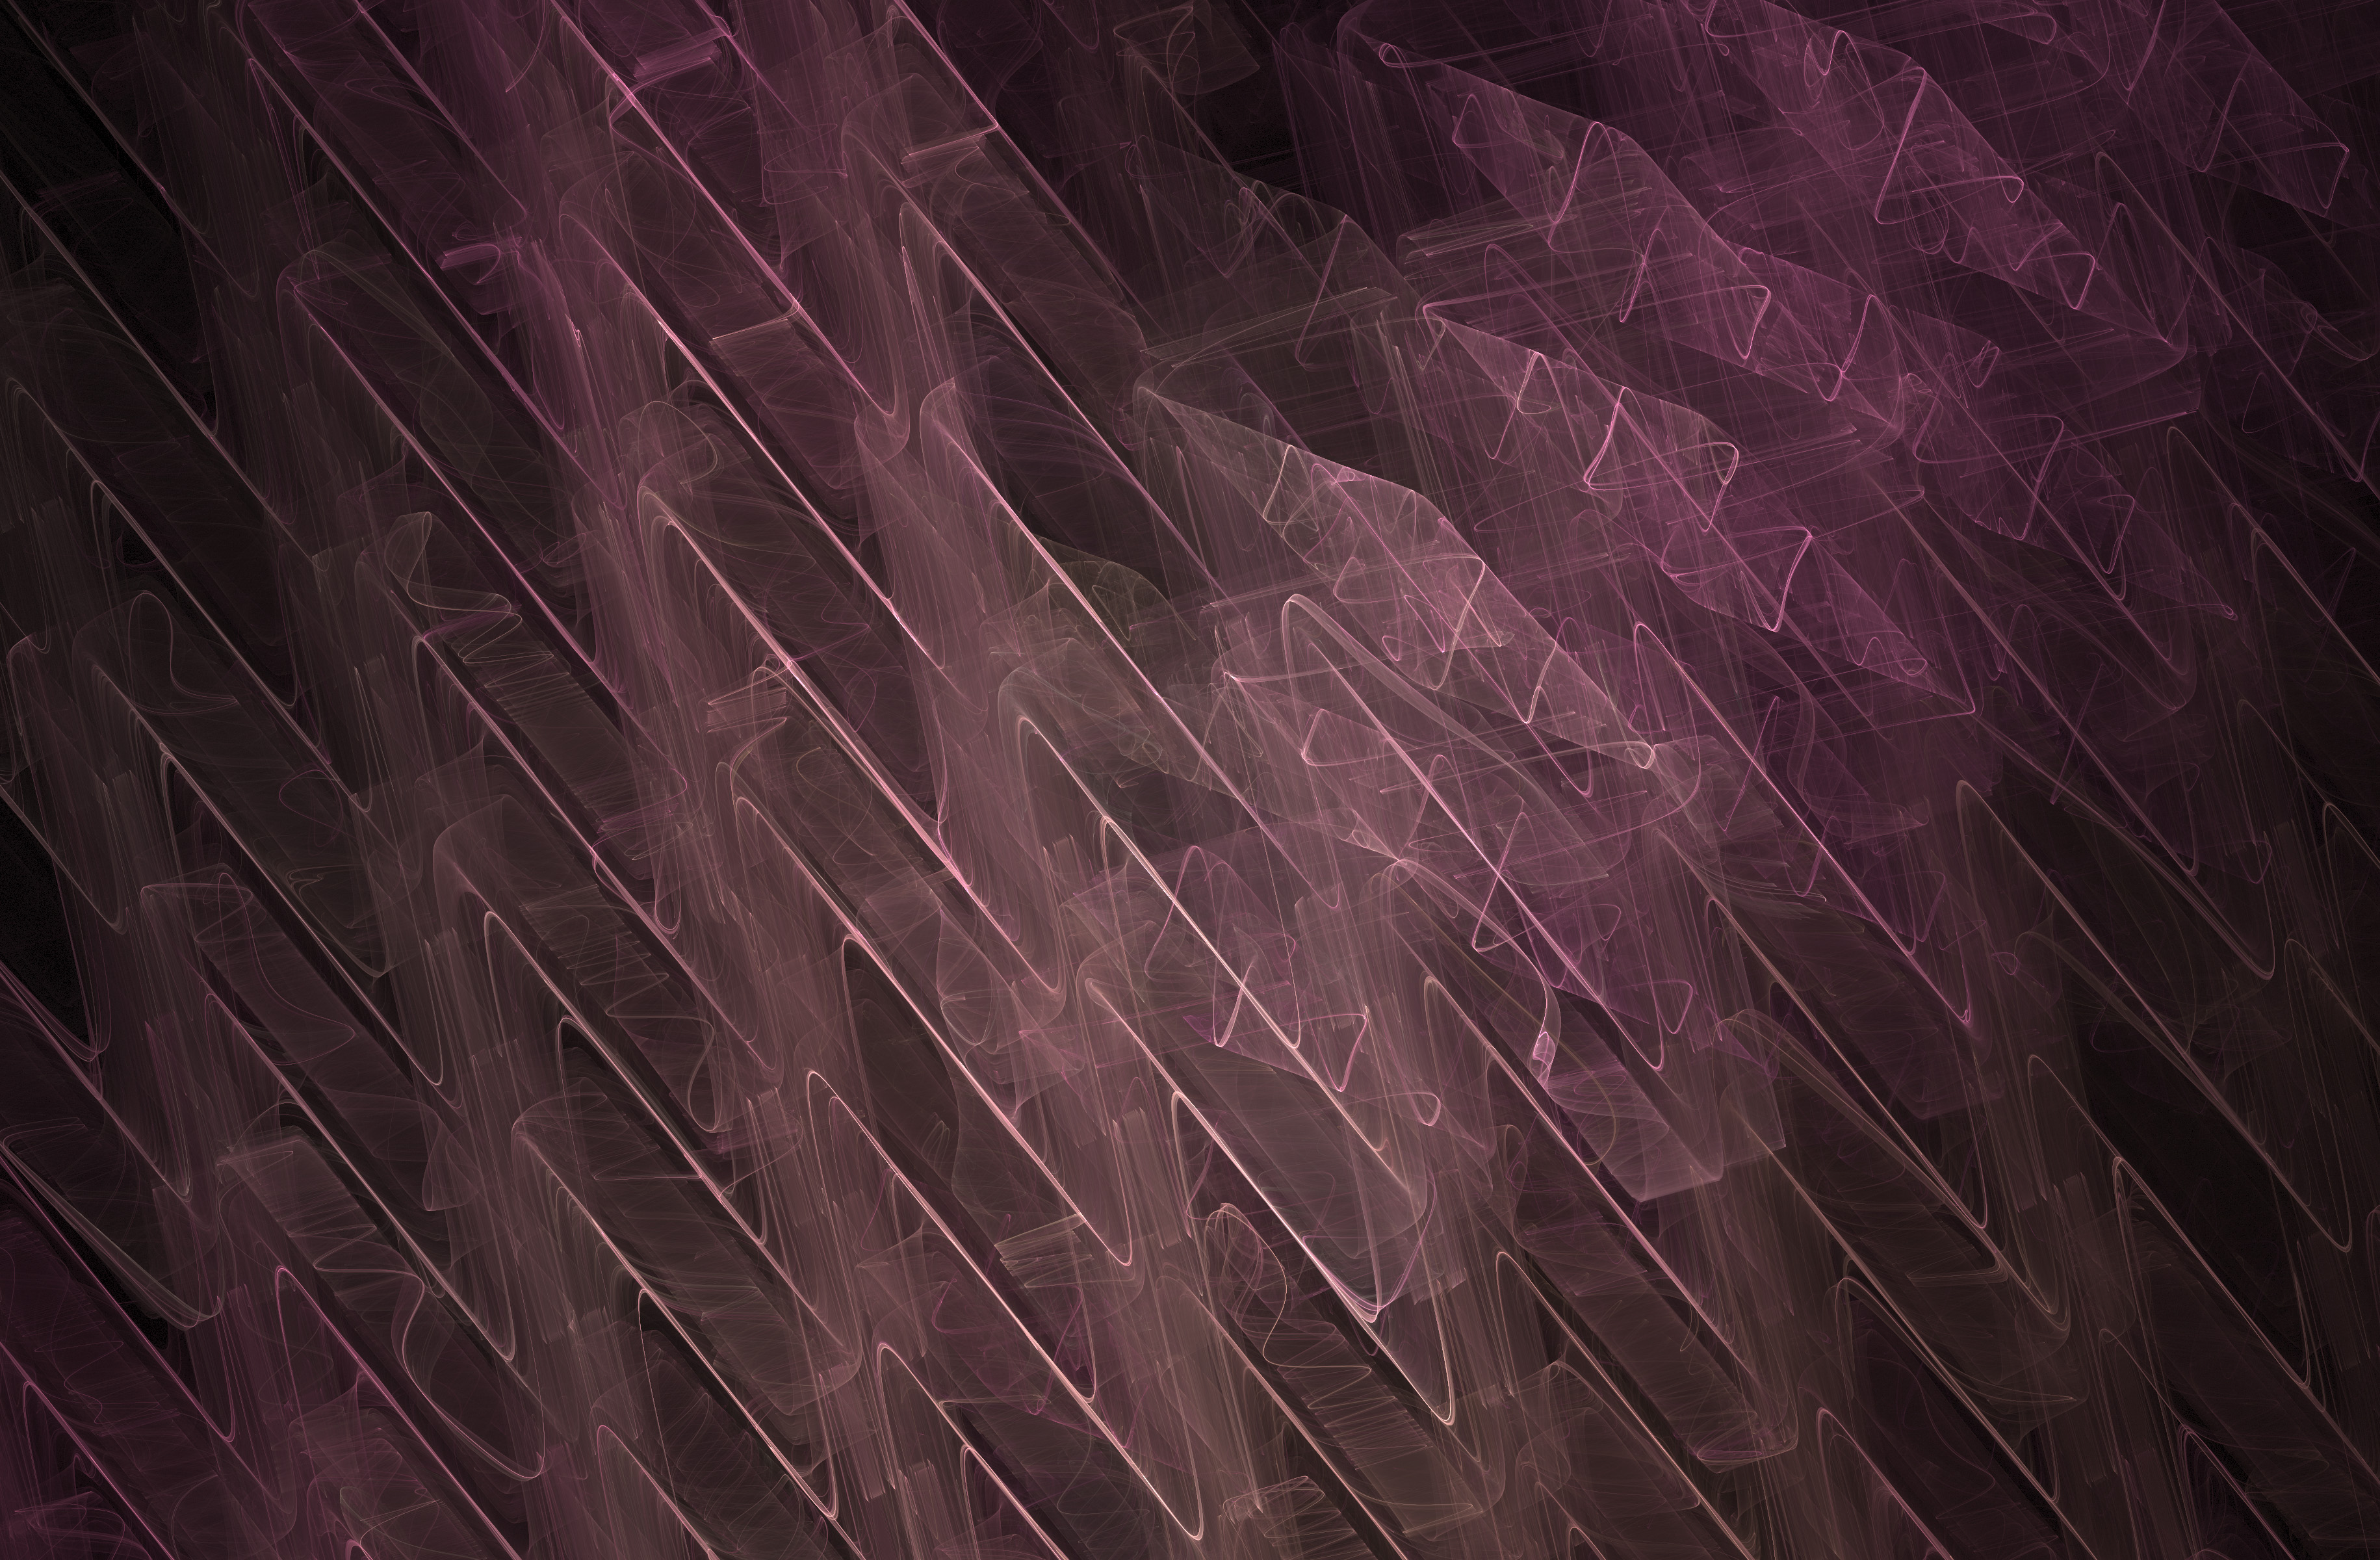 graphic pink cg background with repeating triangle wave like lines